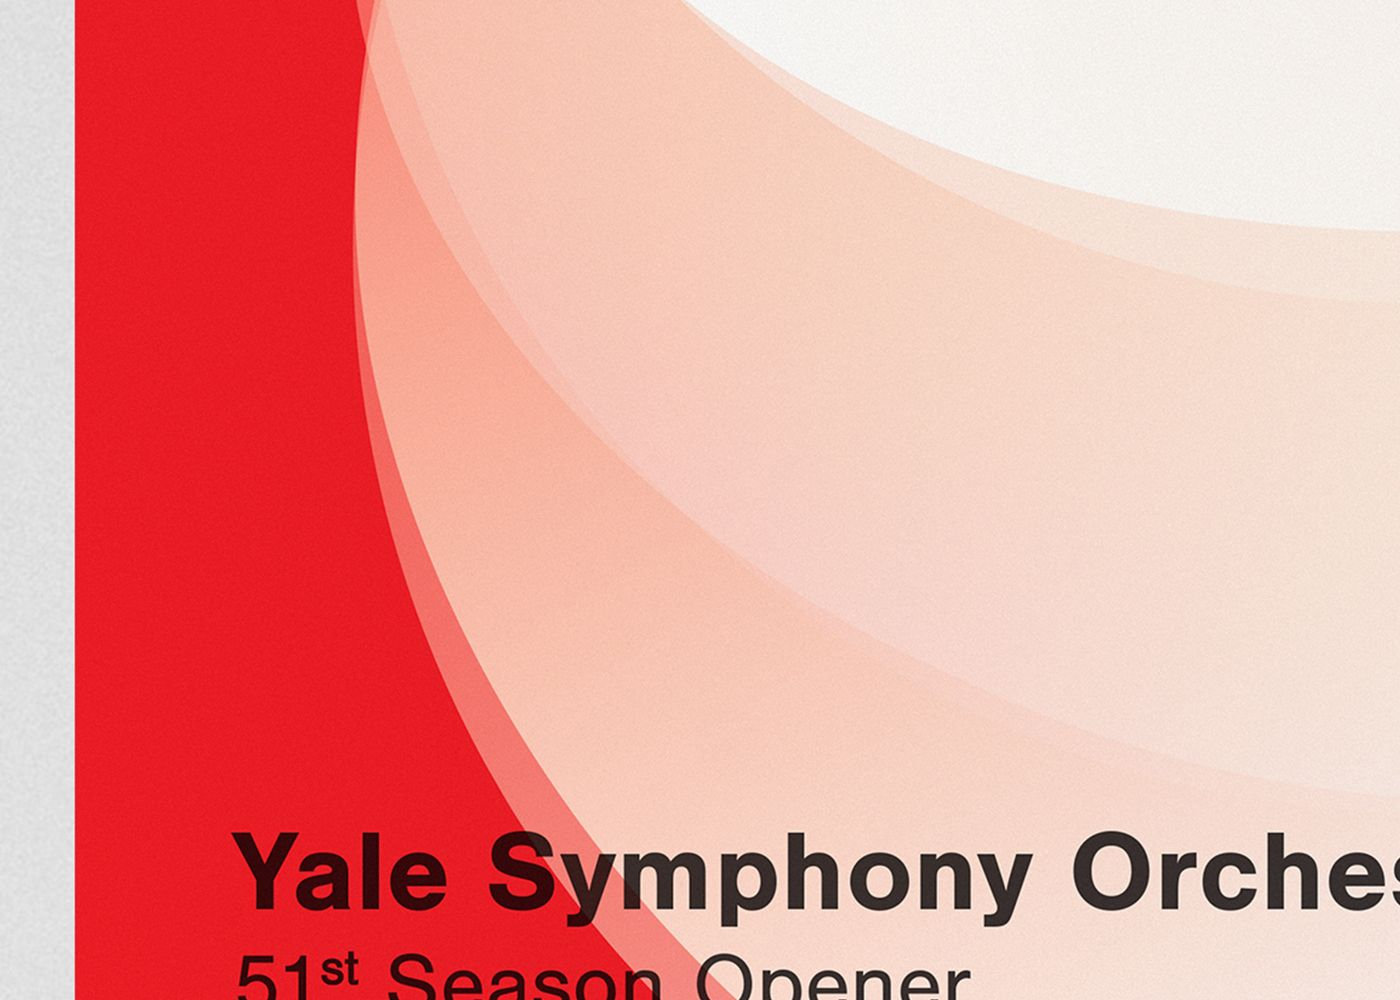 Detail of the poster for the Opening Concert of the 51st Season